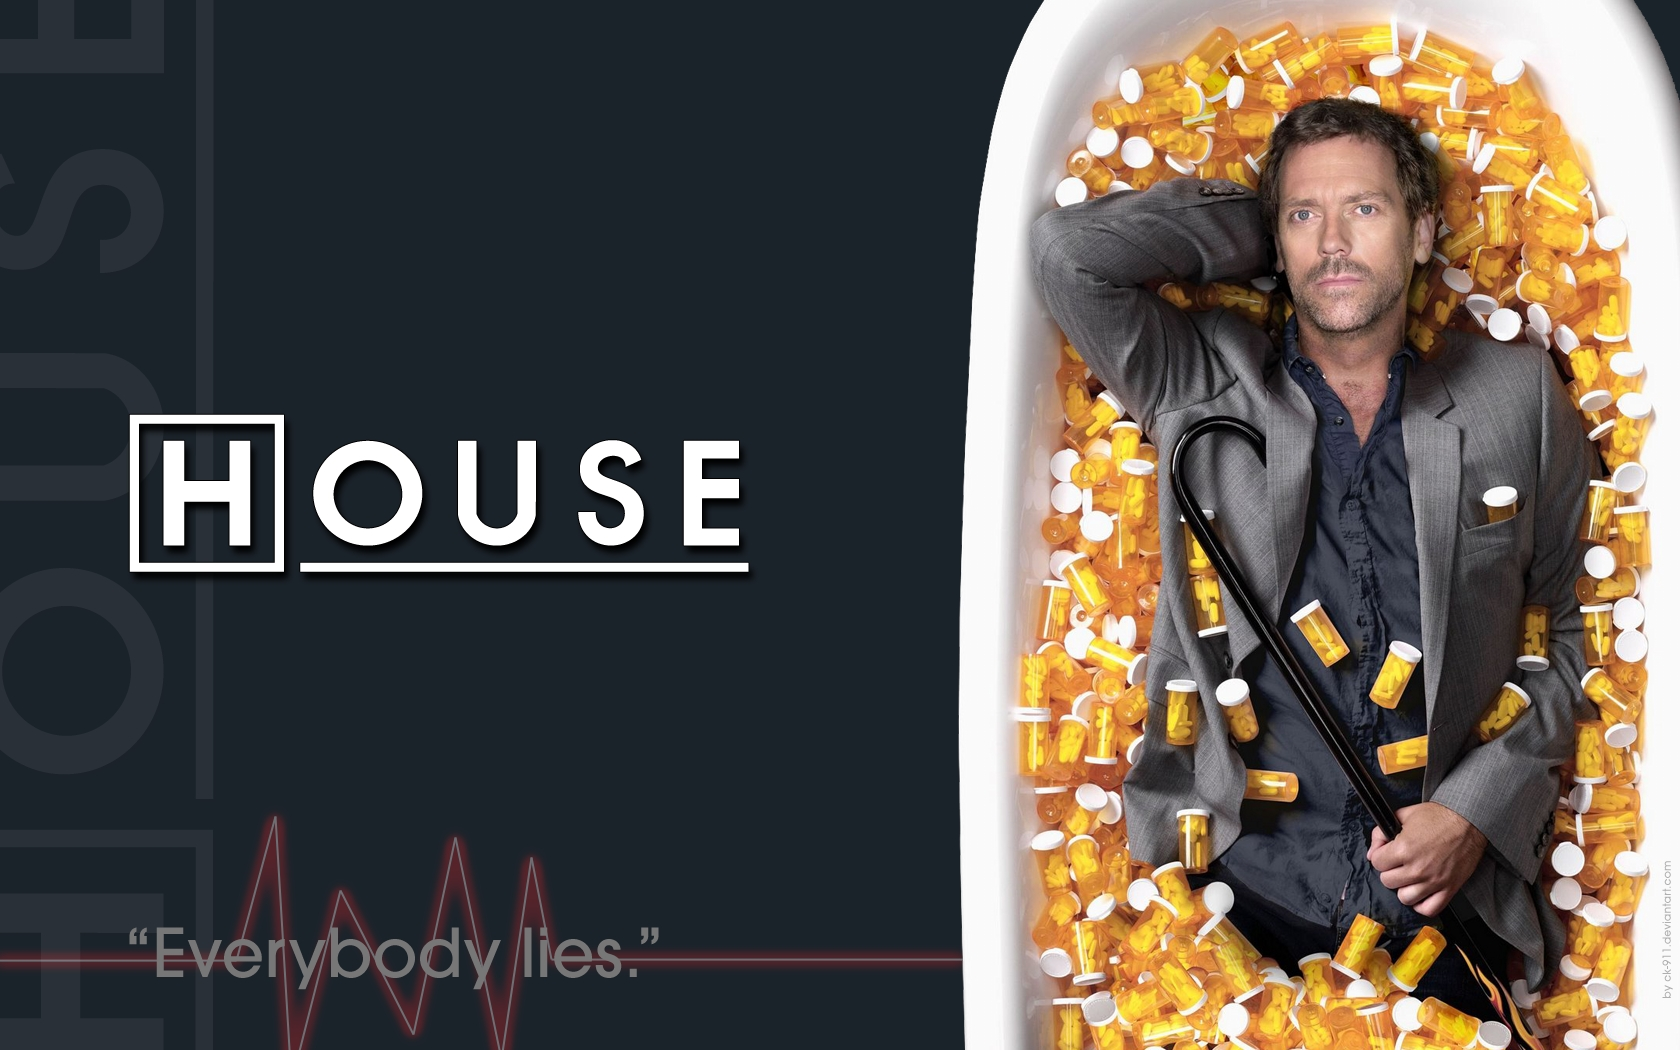 TV-program - Hus  - Sons Of Anarchy - Hugh Laurie - Dr. Gregory House Bakgrund